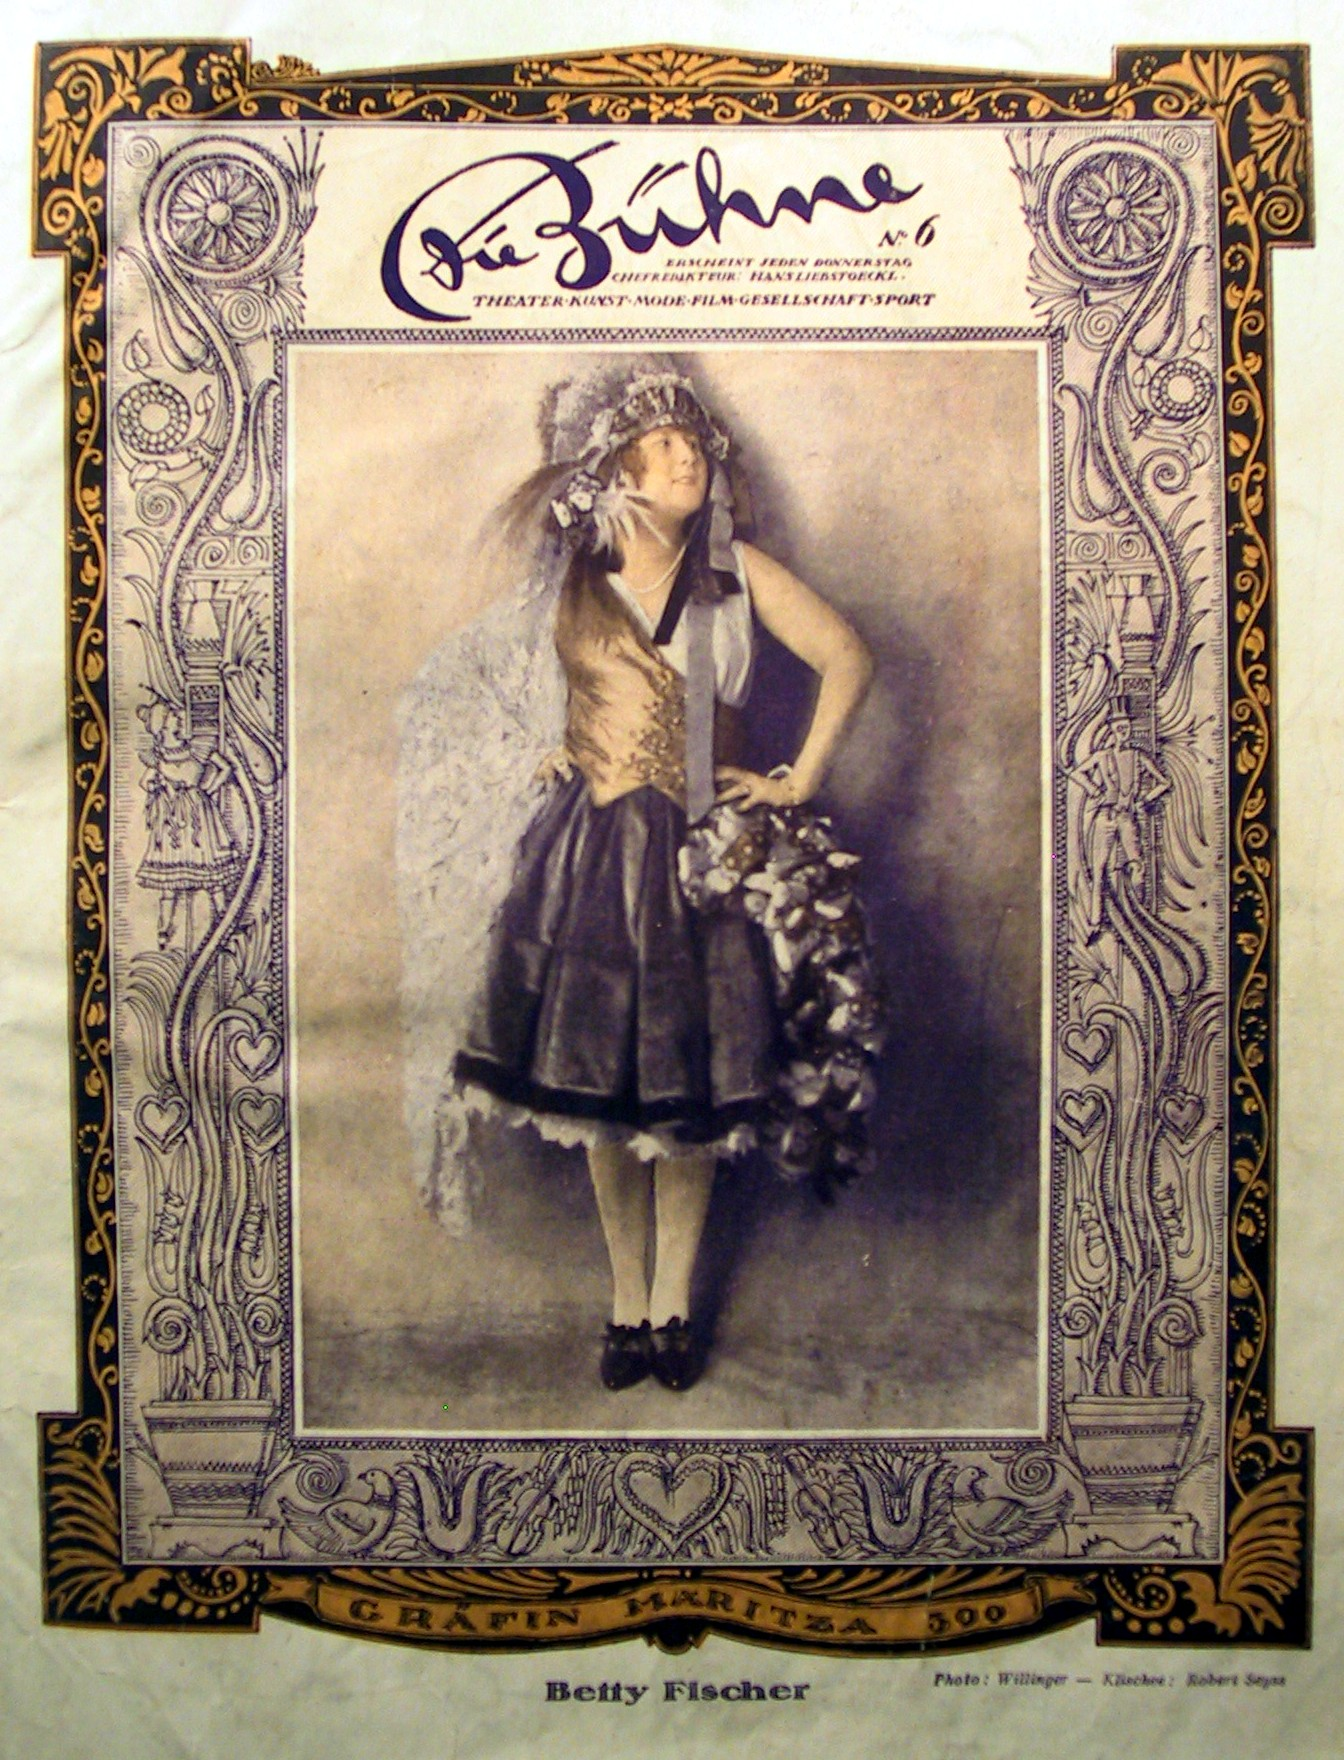 """Betty Fischer as Mariza on the cover of """"Die Bühne"""" in 1924."""